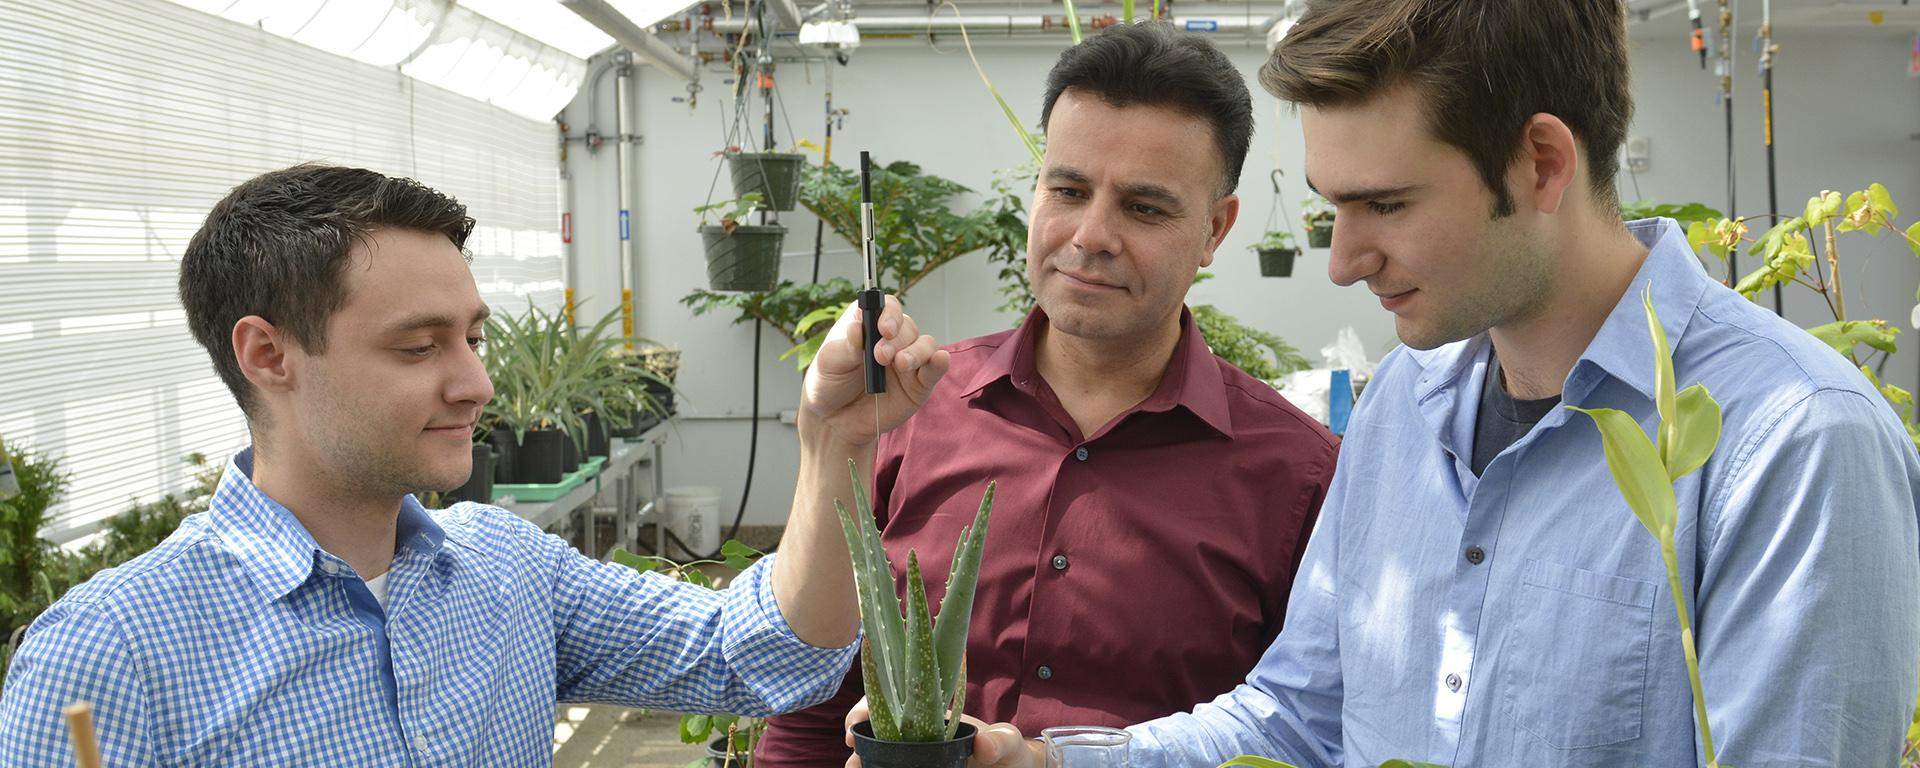 Vadoud Niri and research students analyze plants